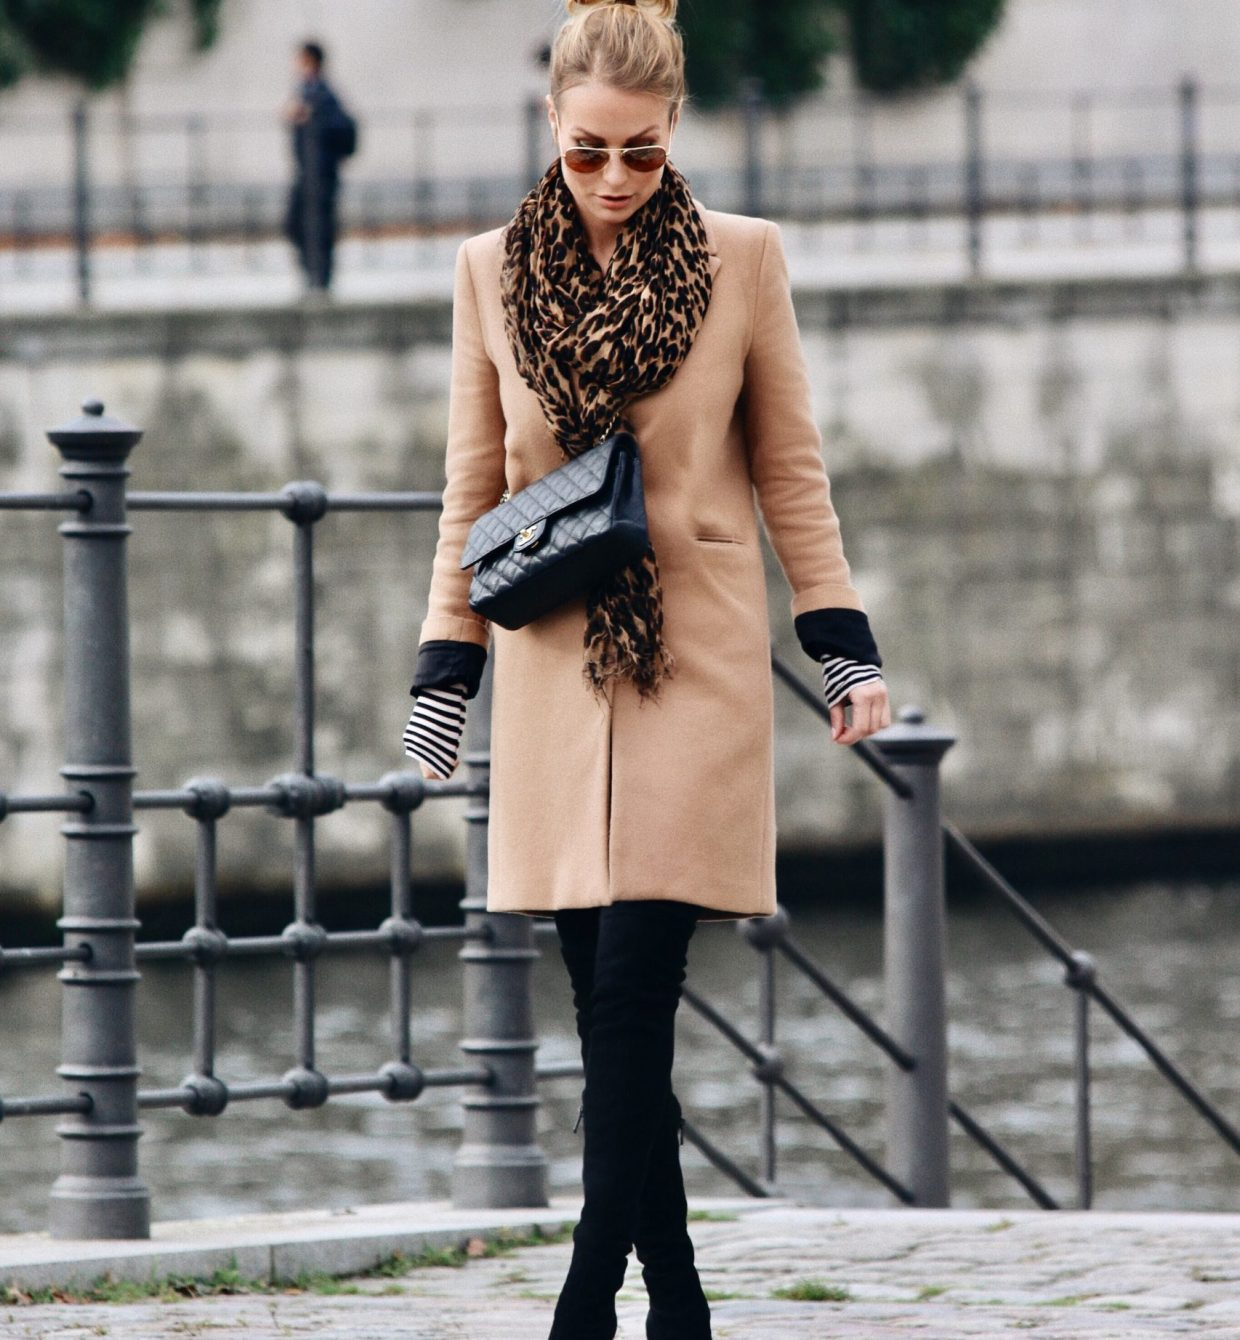 Style guide #3 chic must have wardrobe items for Fall/Winter.